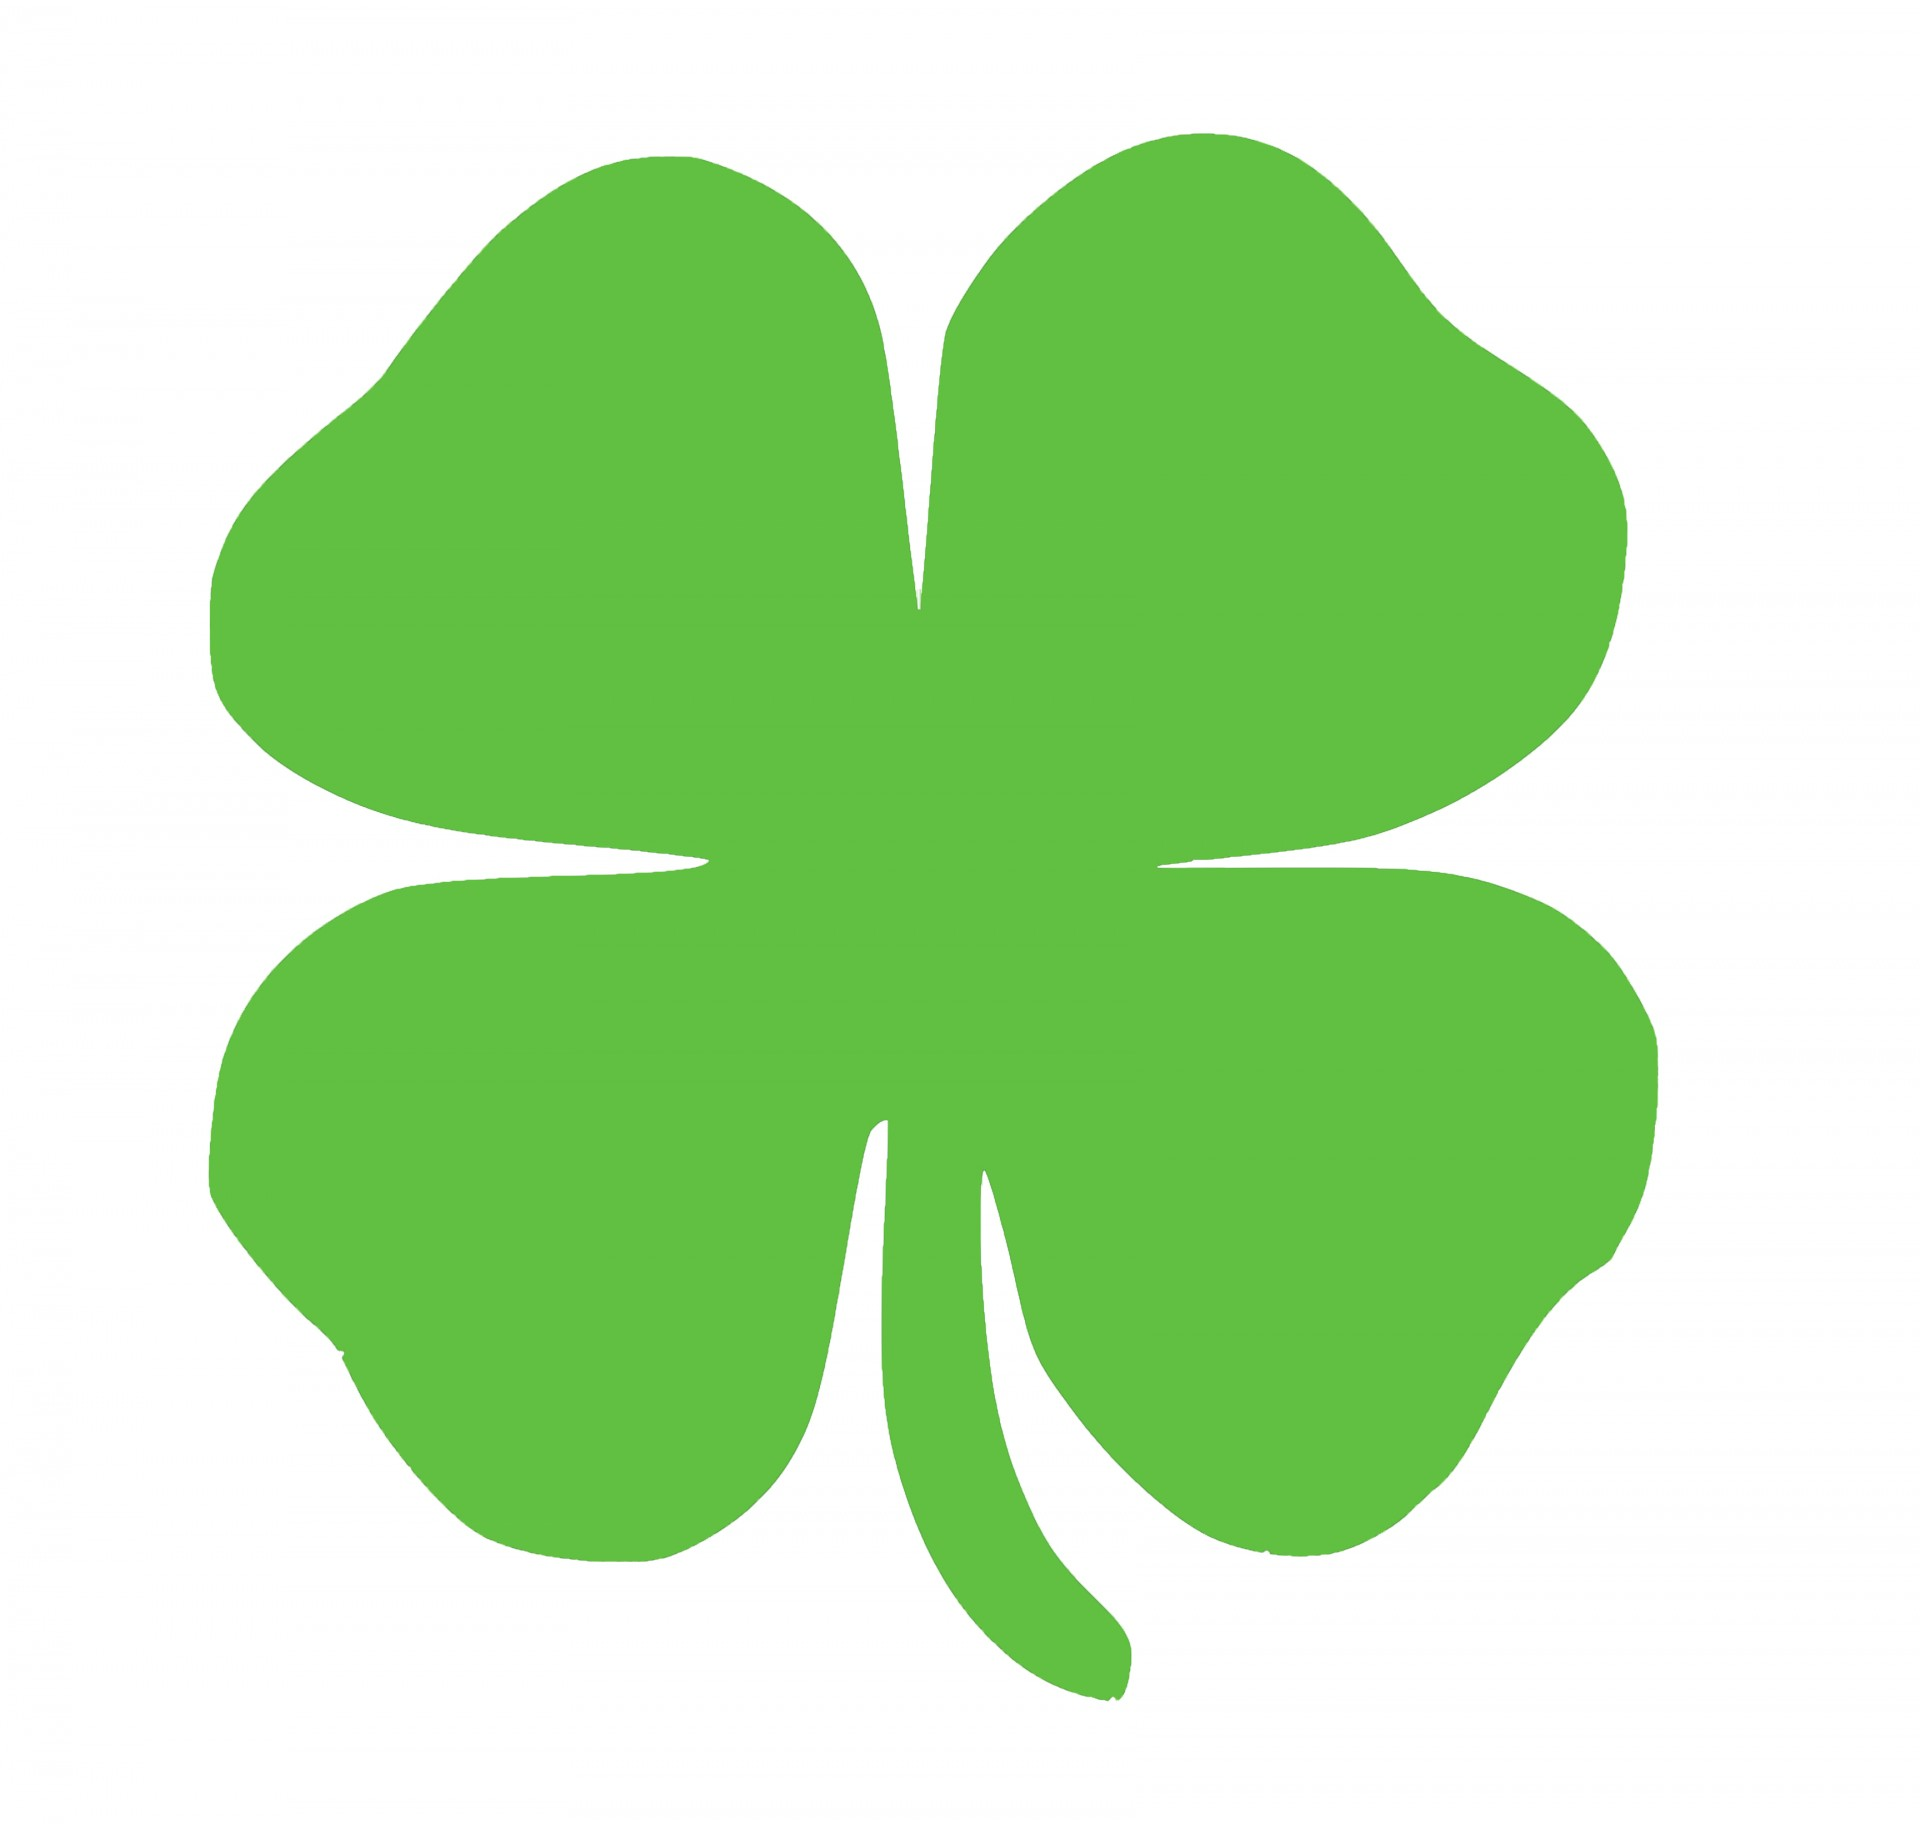 1920x1824 Shamrock For St Patrick's Day Free Stock Photo